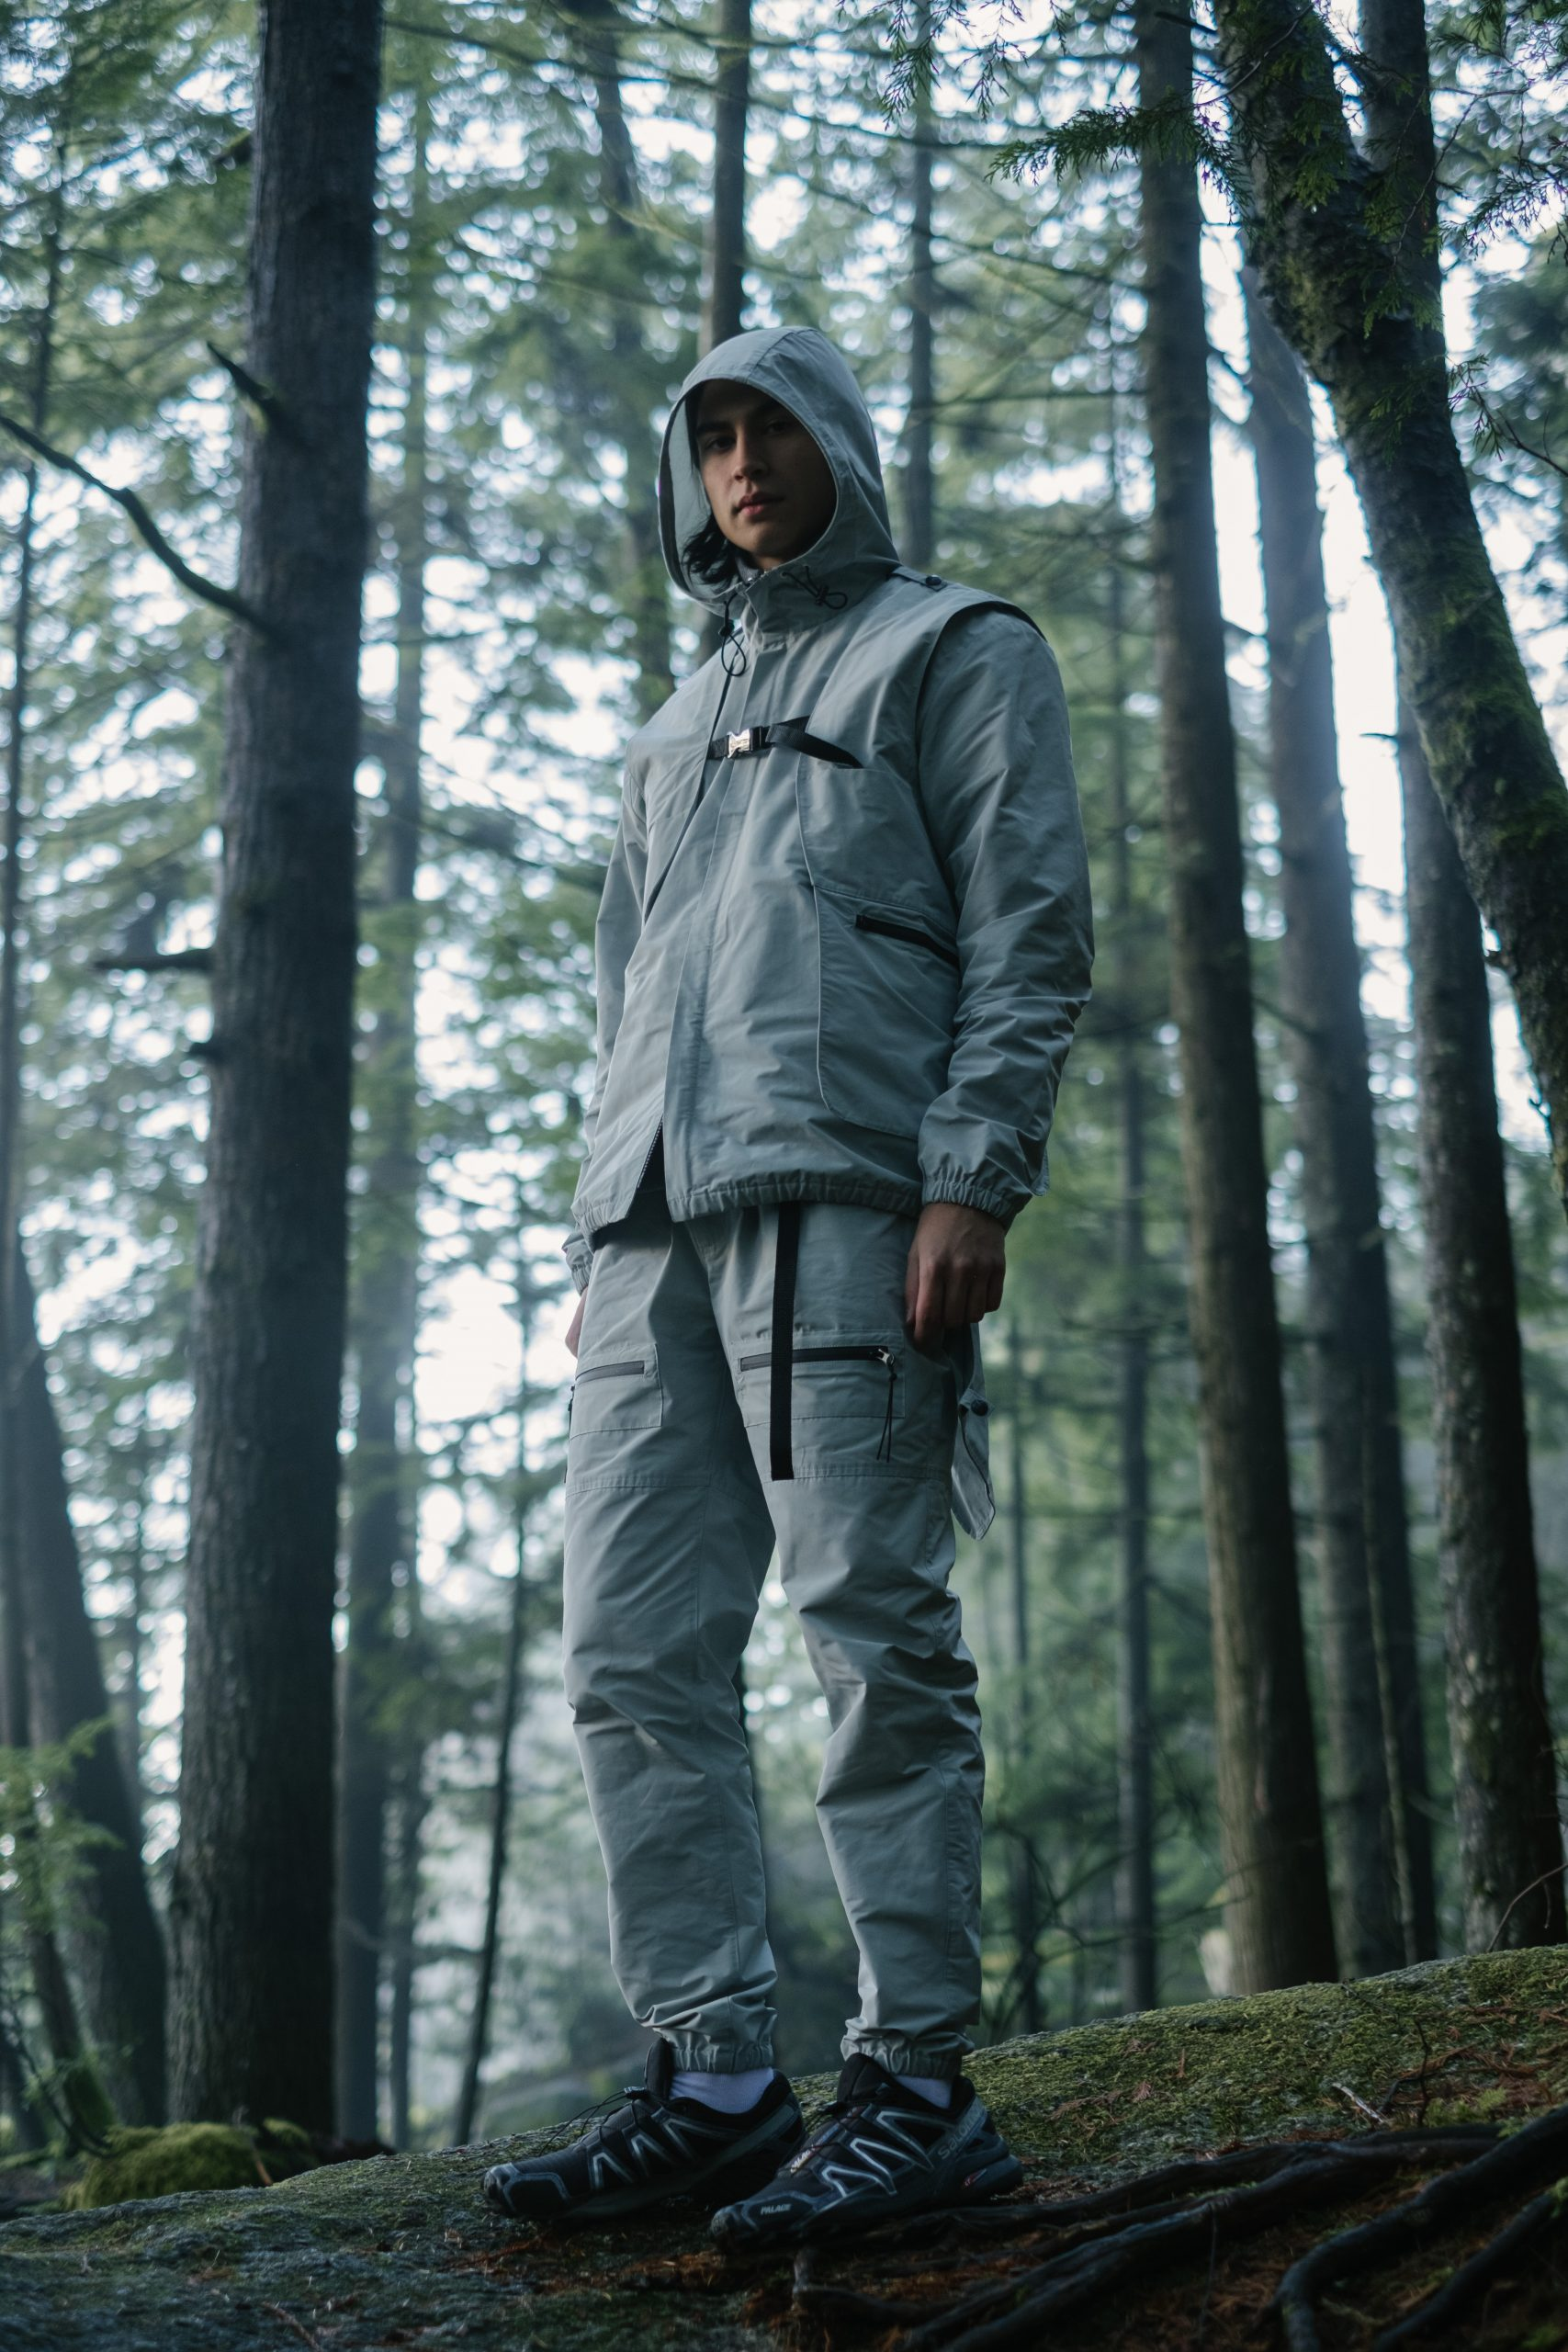 Victor Li Launches Sustainable VTR Collection With First Drop Release